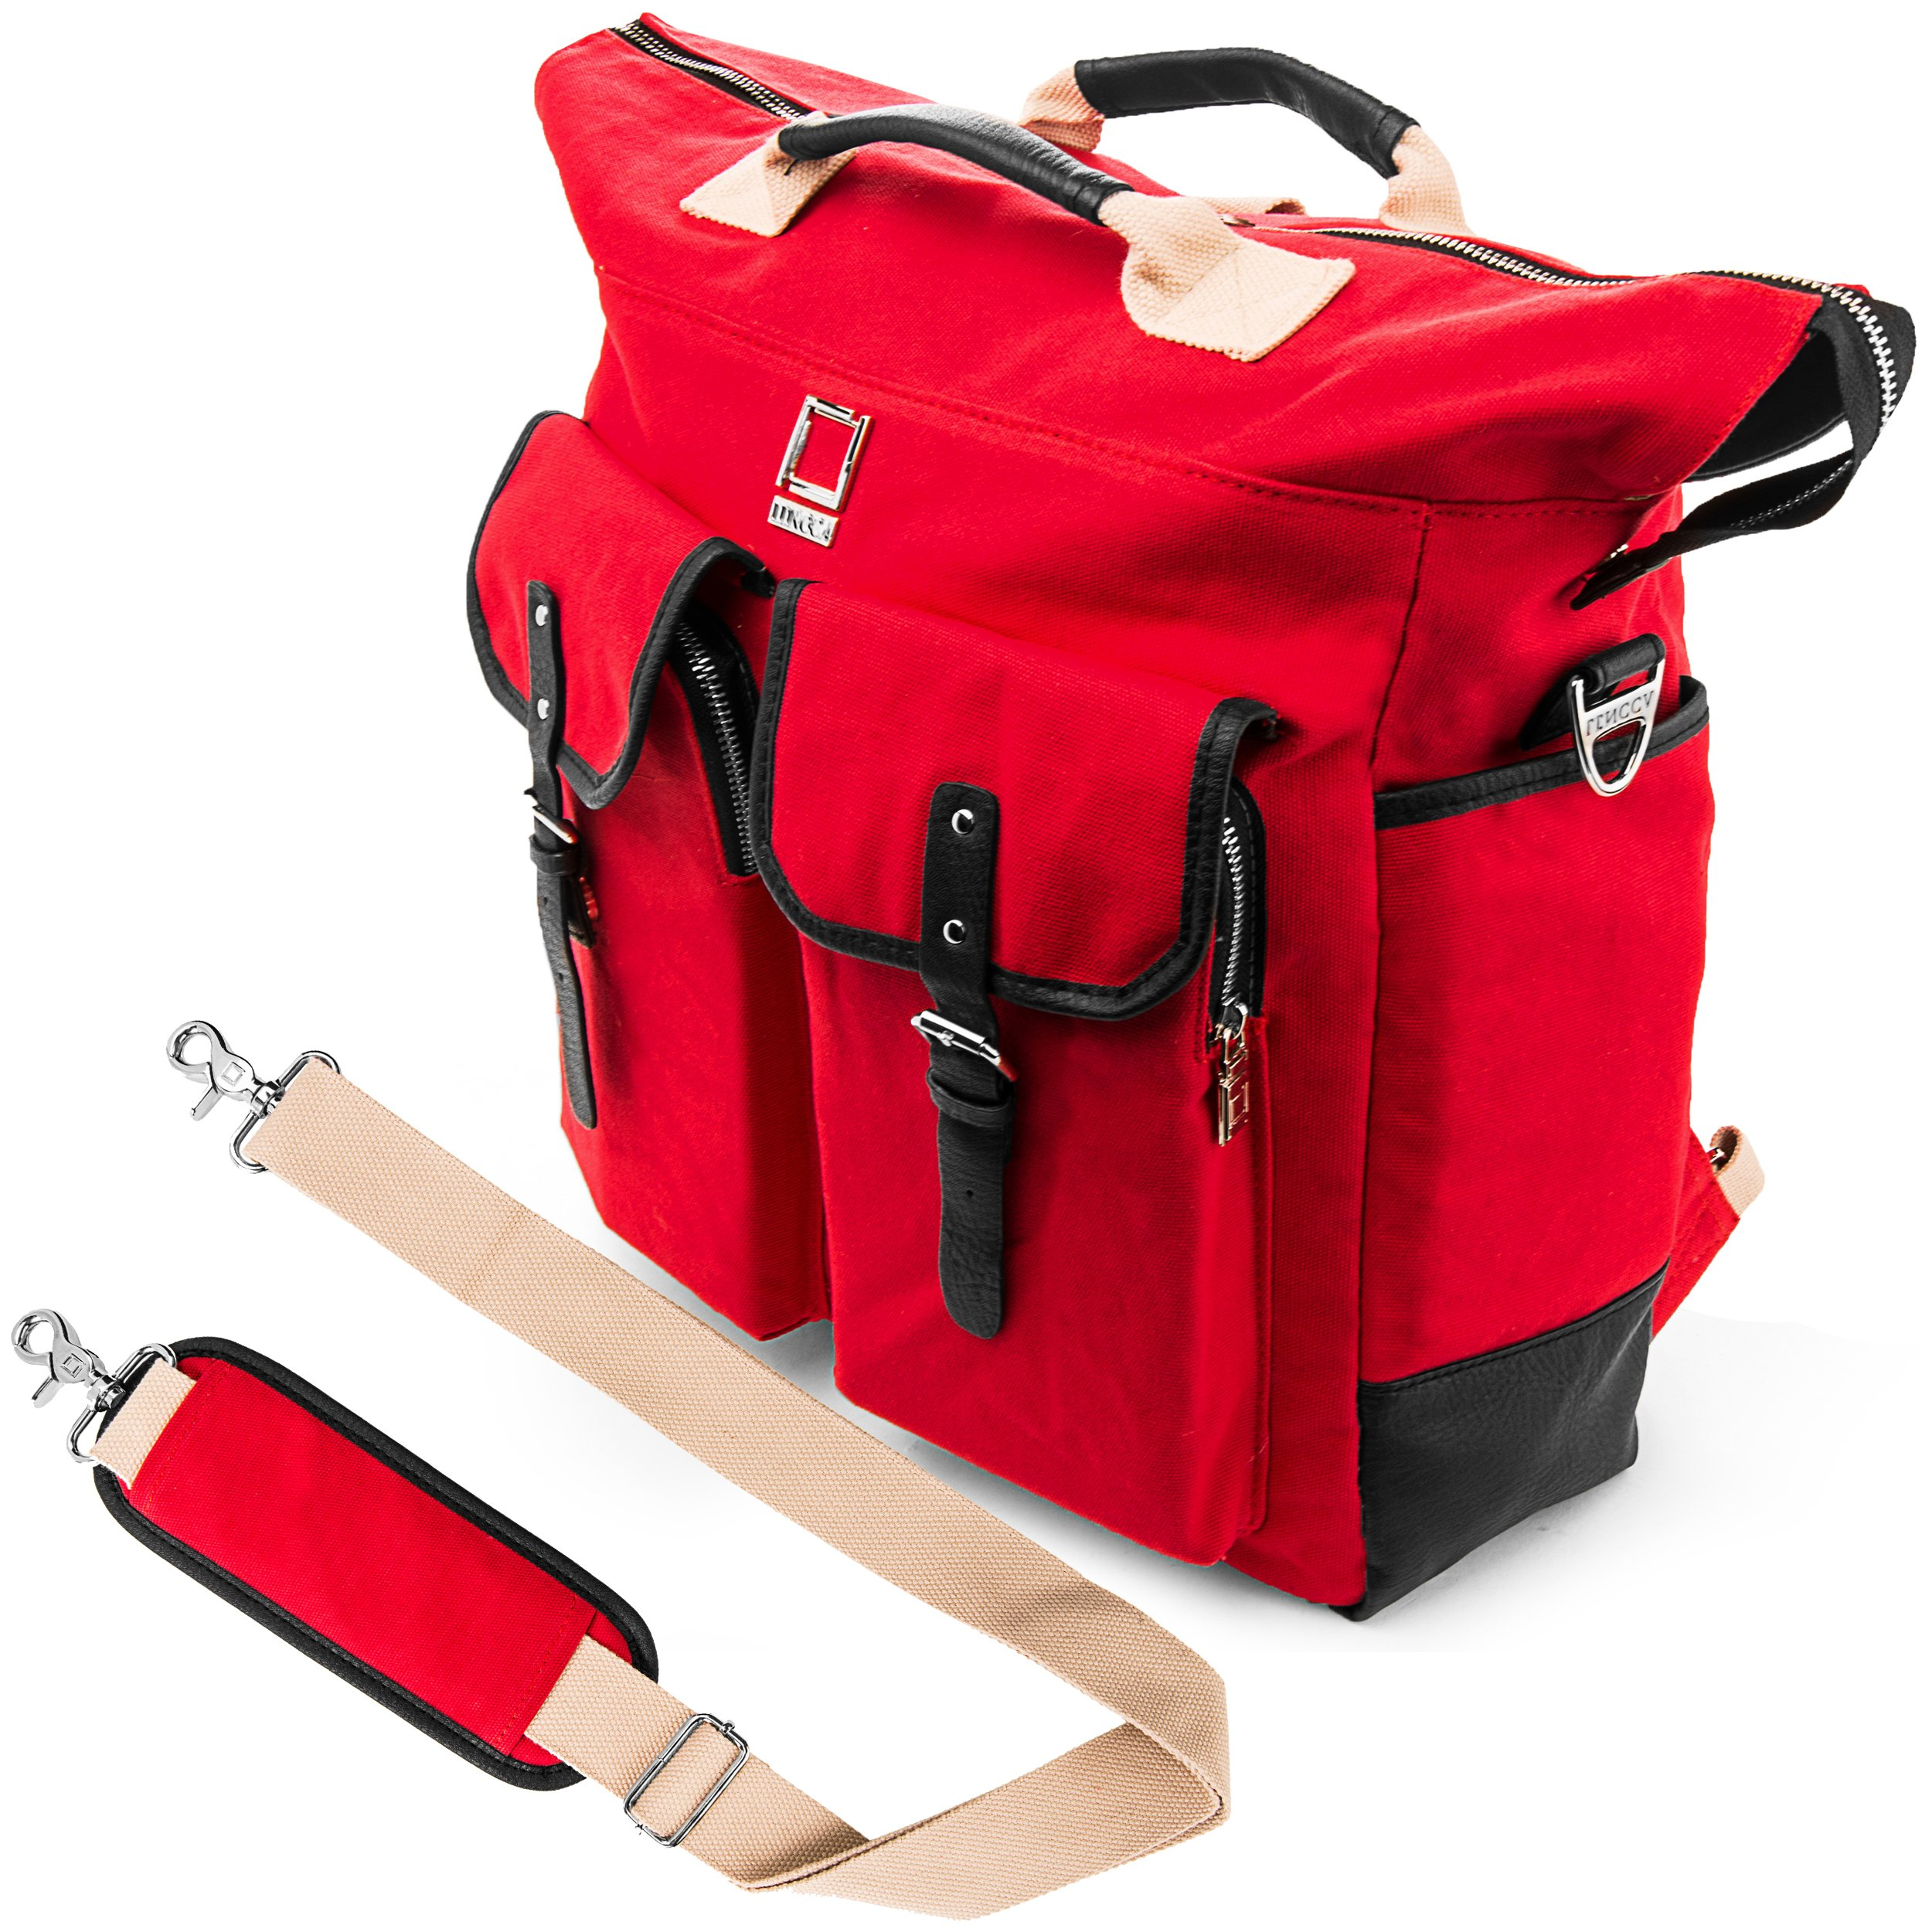 Lencca Universal Hybrid 3 in 1Design Carrying / Tote / Messenger / Crossbody / Backpack / Shoulder Bag with Removable Strap for ASUS X551MAV EB01 B series Fit 15.6 inch Windows Notebook / Google Chromebook / Ultrabook / Laptop (Red)